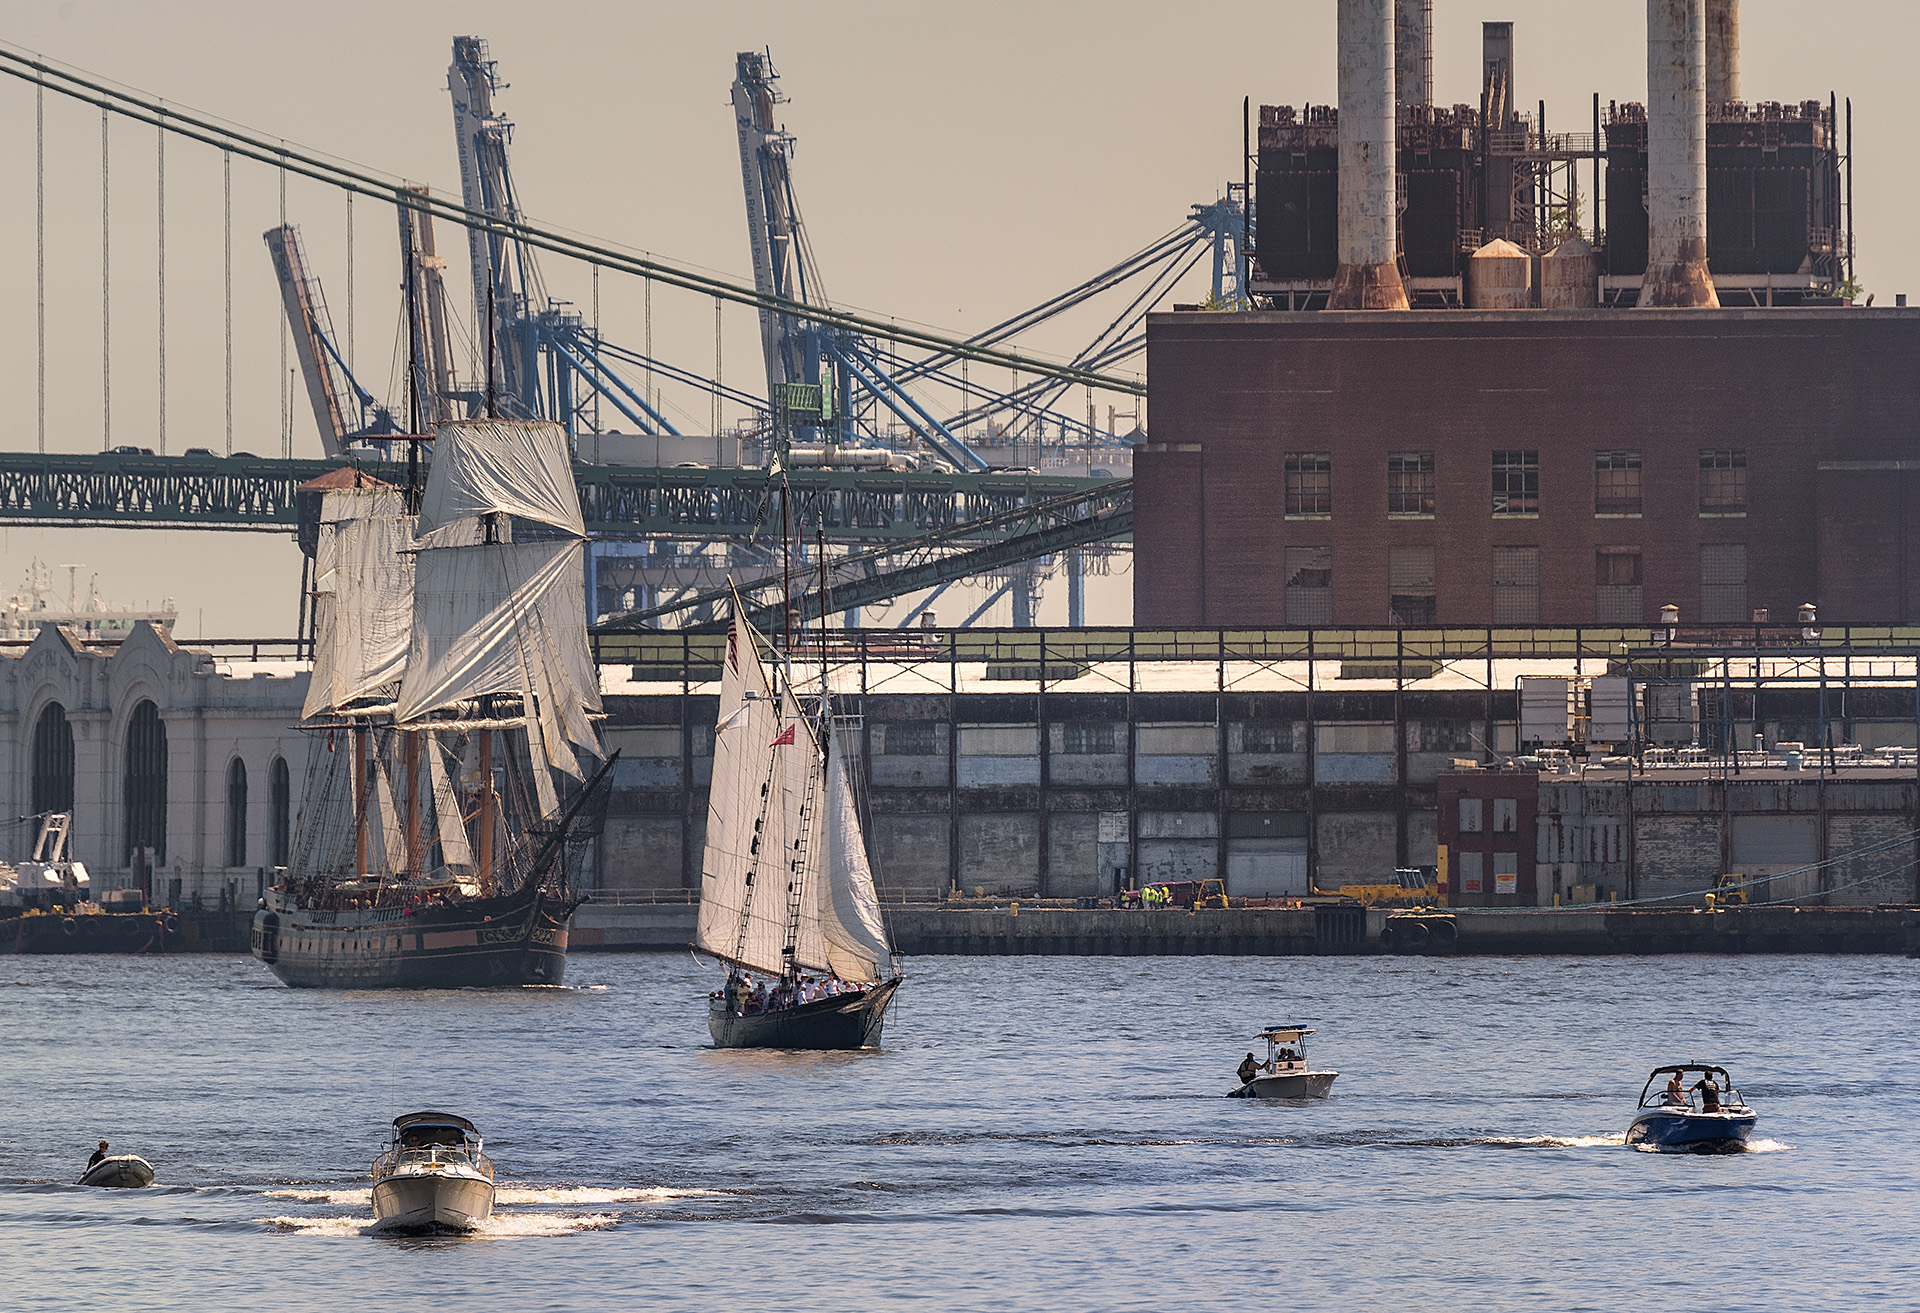 Images from the Tall Ships Parade of Sail along Penns Landing and Camden Waterfront.